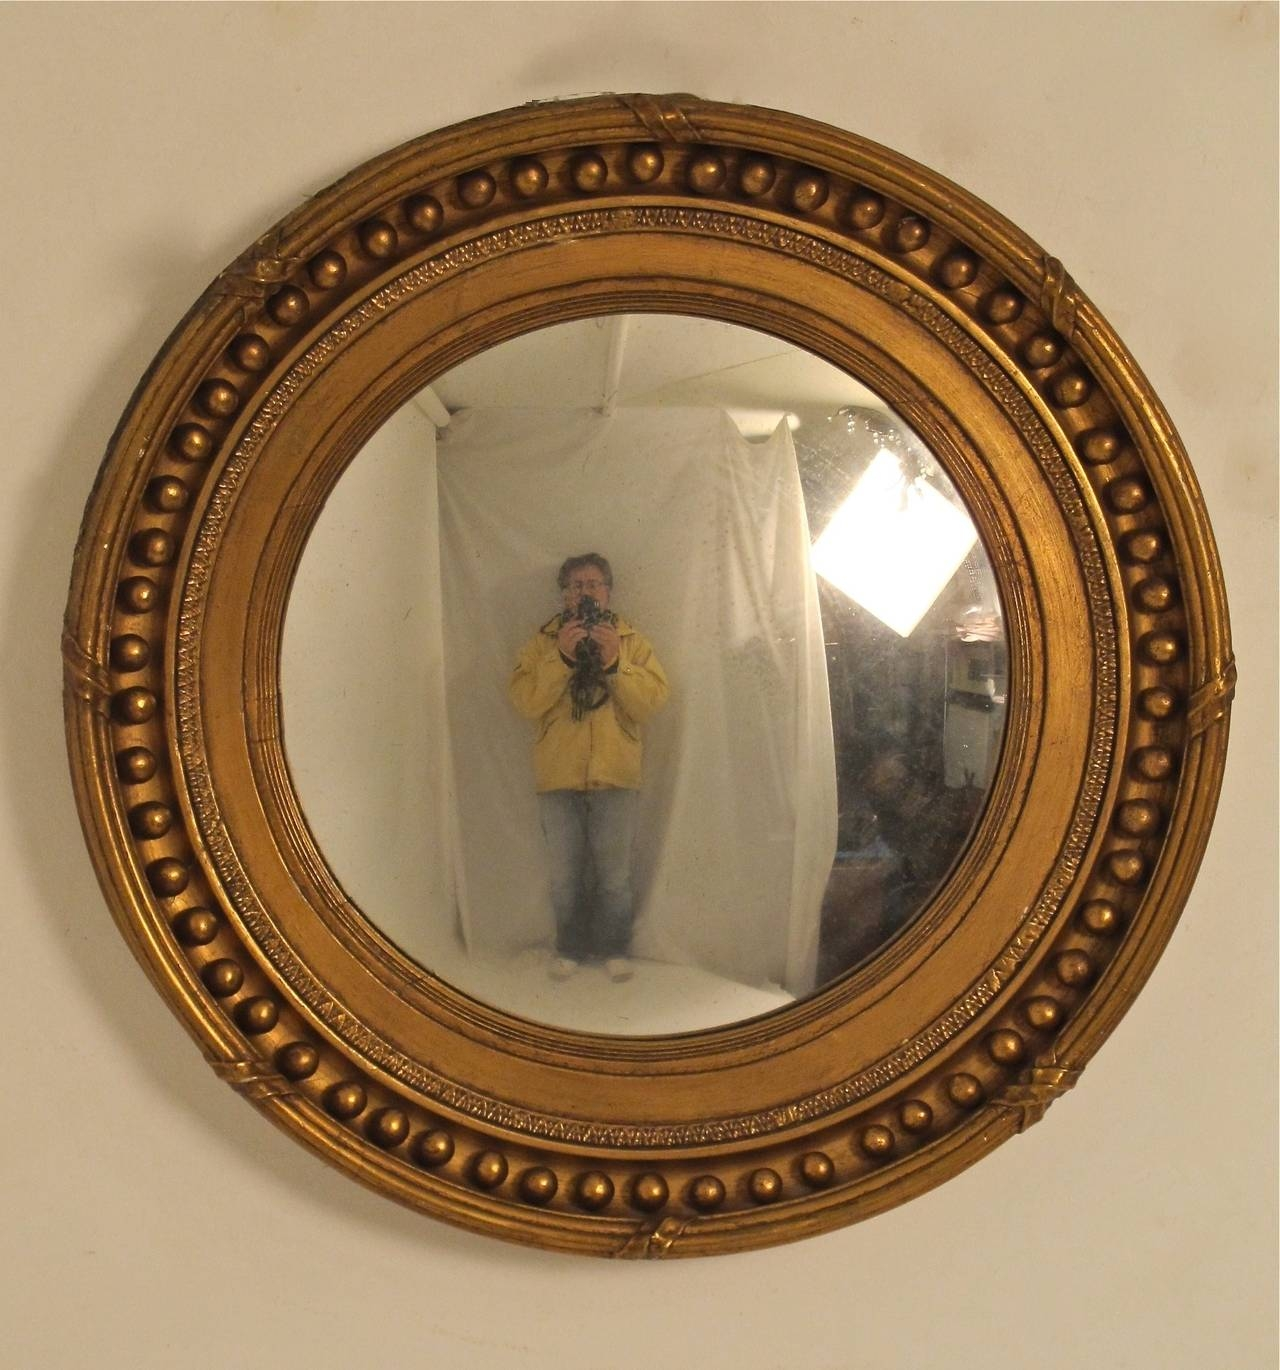 19th Century Regency Style Convex Mirror At 1stdibs With Regard To Convex Decorative Mirror (Image 1 of 15)